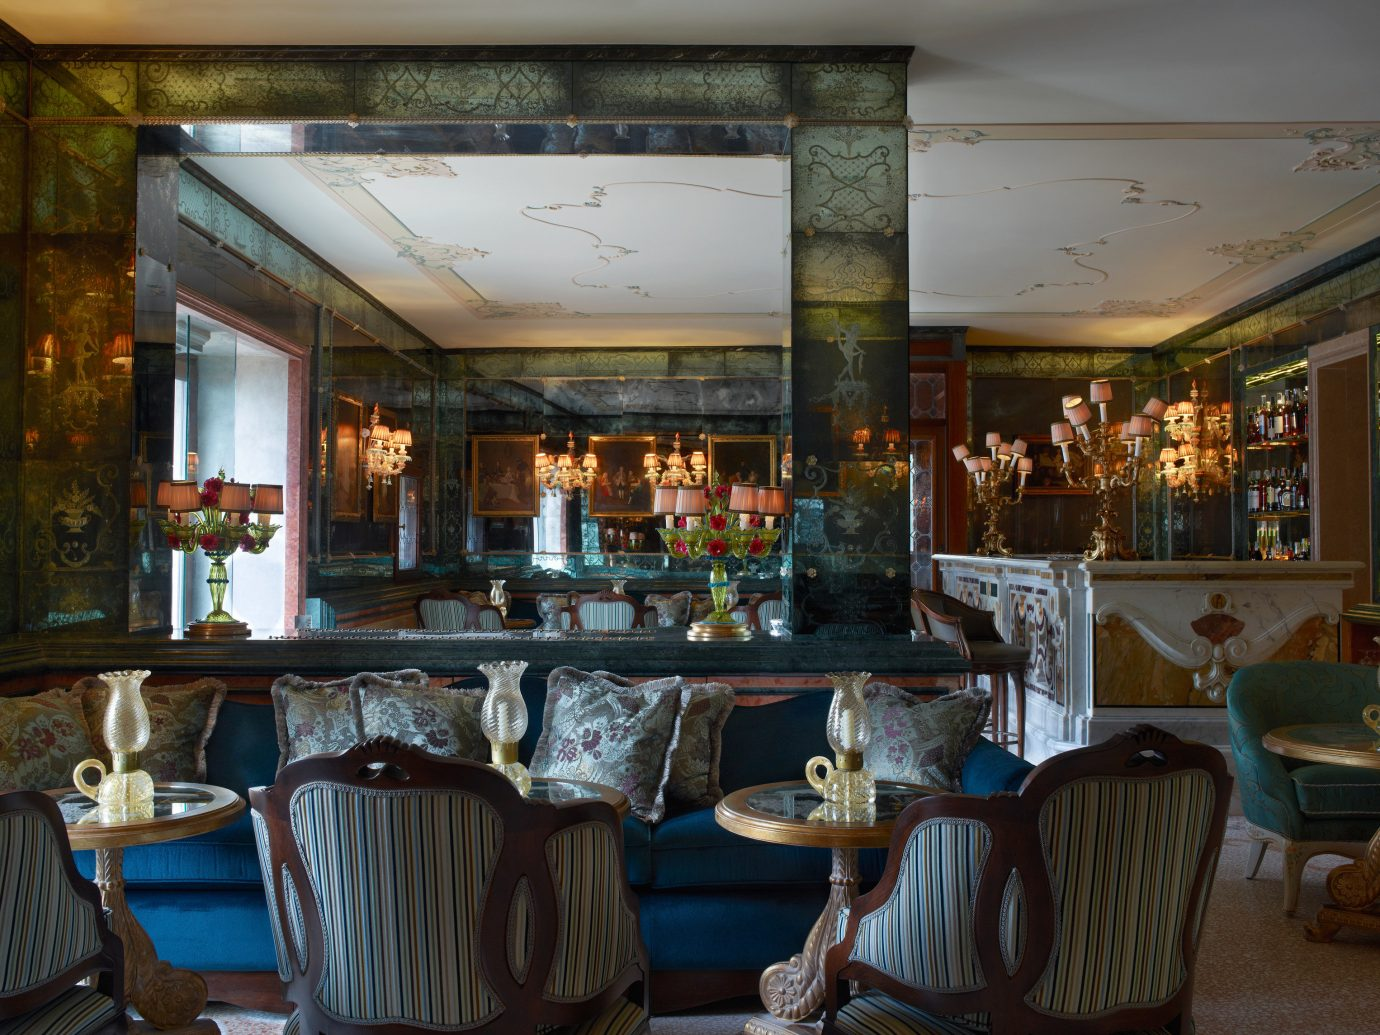 Hotels Italy Luxury Travel Venice indoor chair room ceiling restaurant interior design meal estate Bar furniture table several dining table